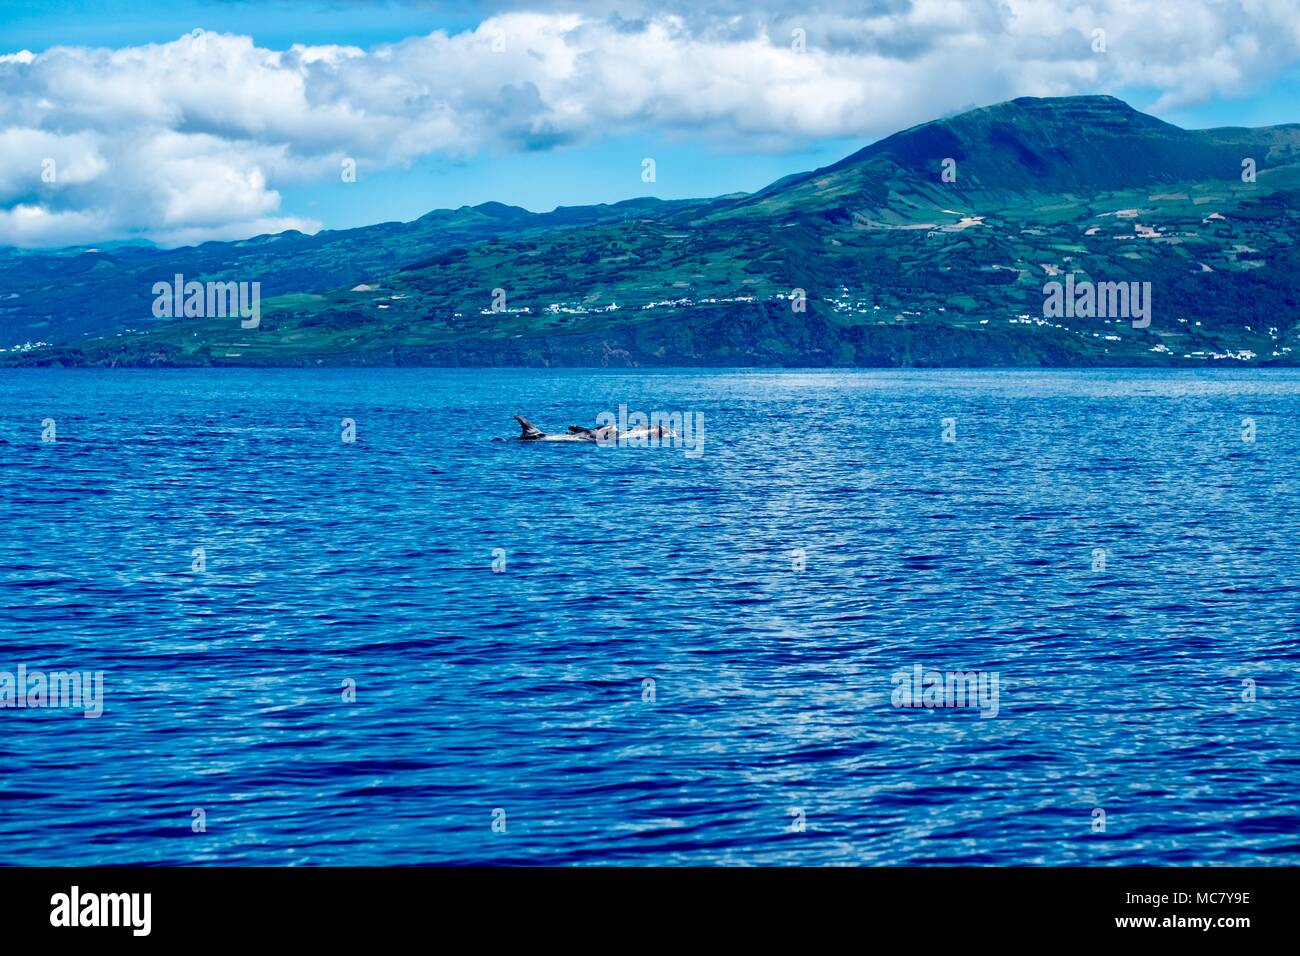 Risso's dolphins and Topo volcano at Pico Island - Stock Image